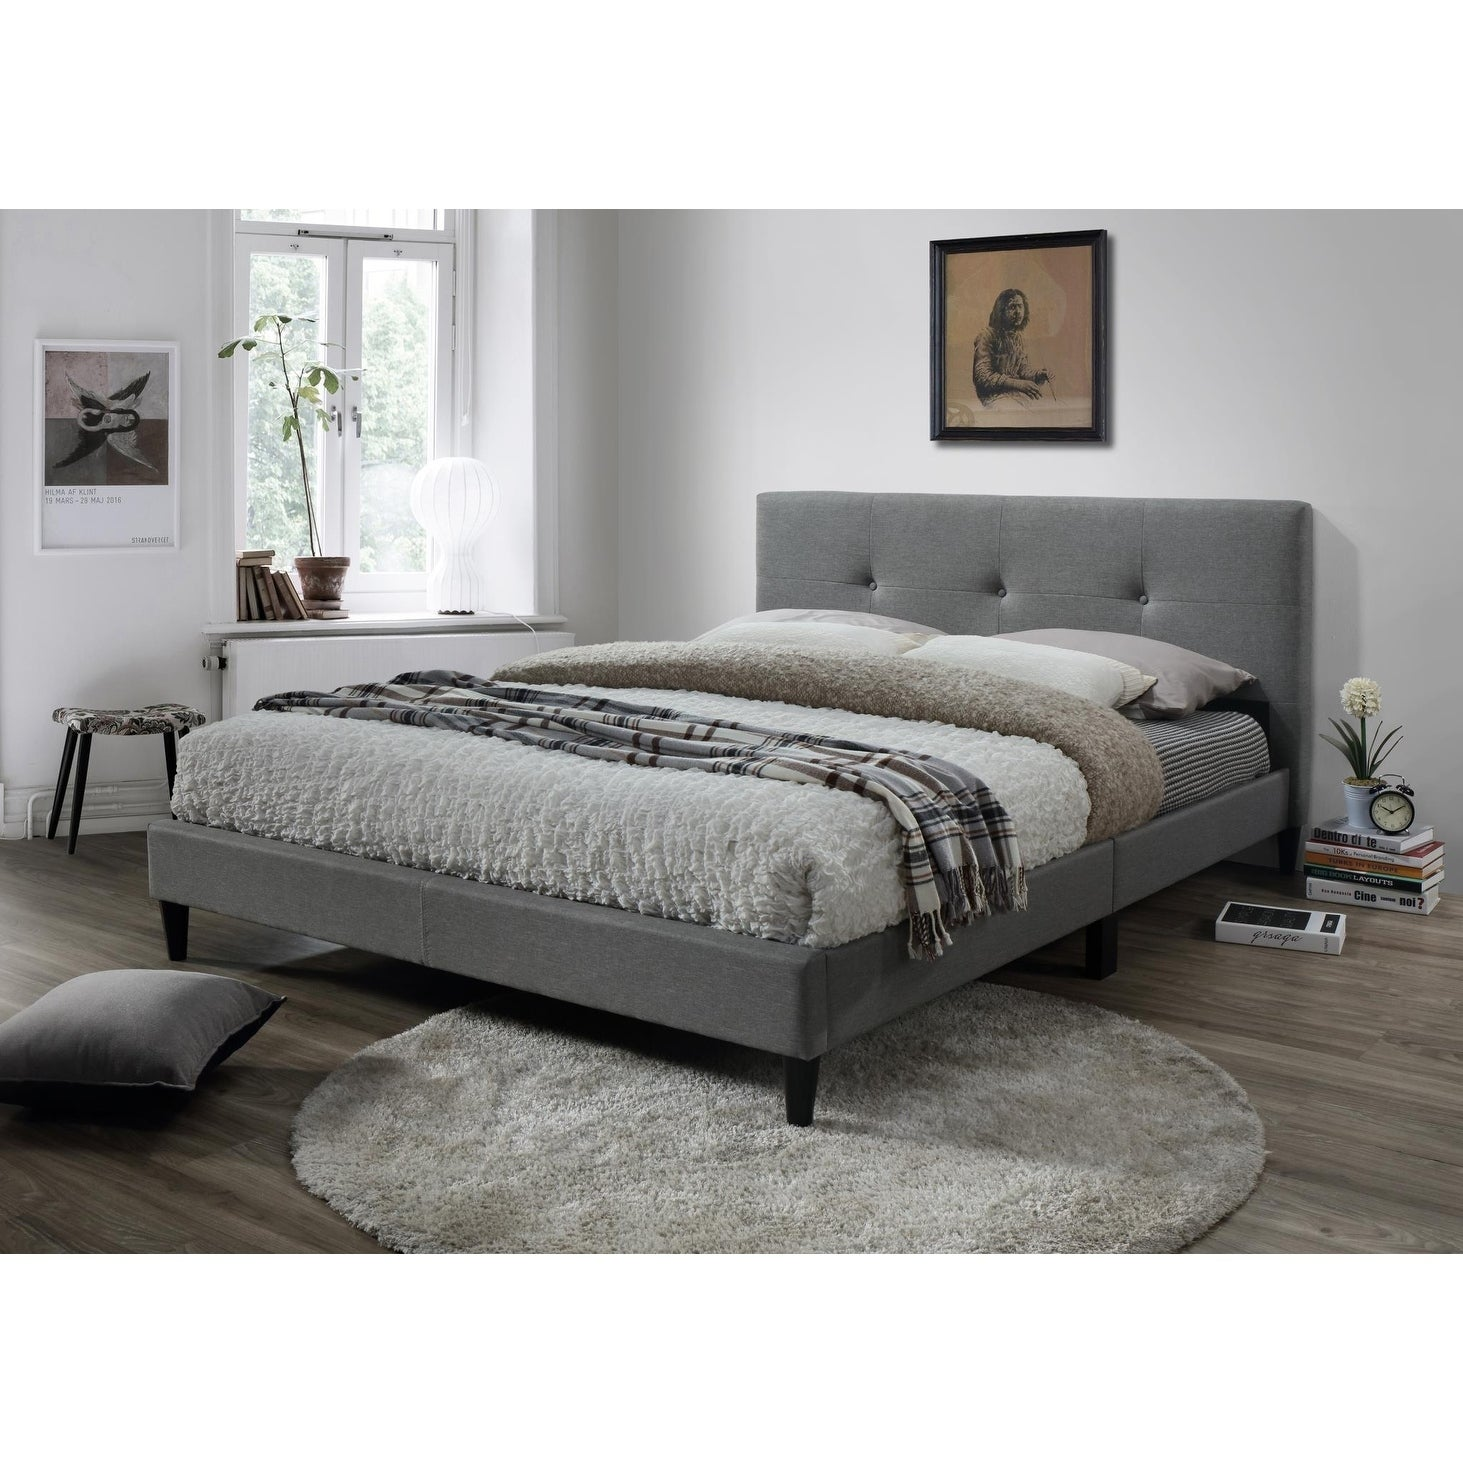 Shop lyke home jackson tufted gray platform bed free shipping today overstock com 17803812